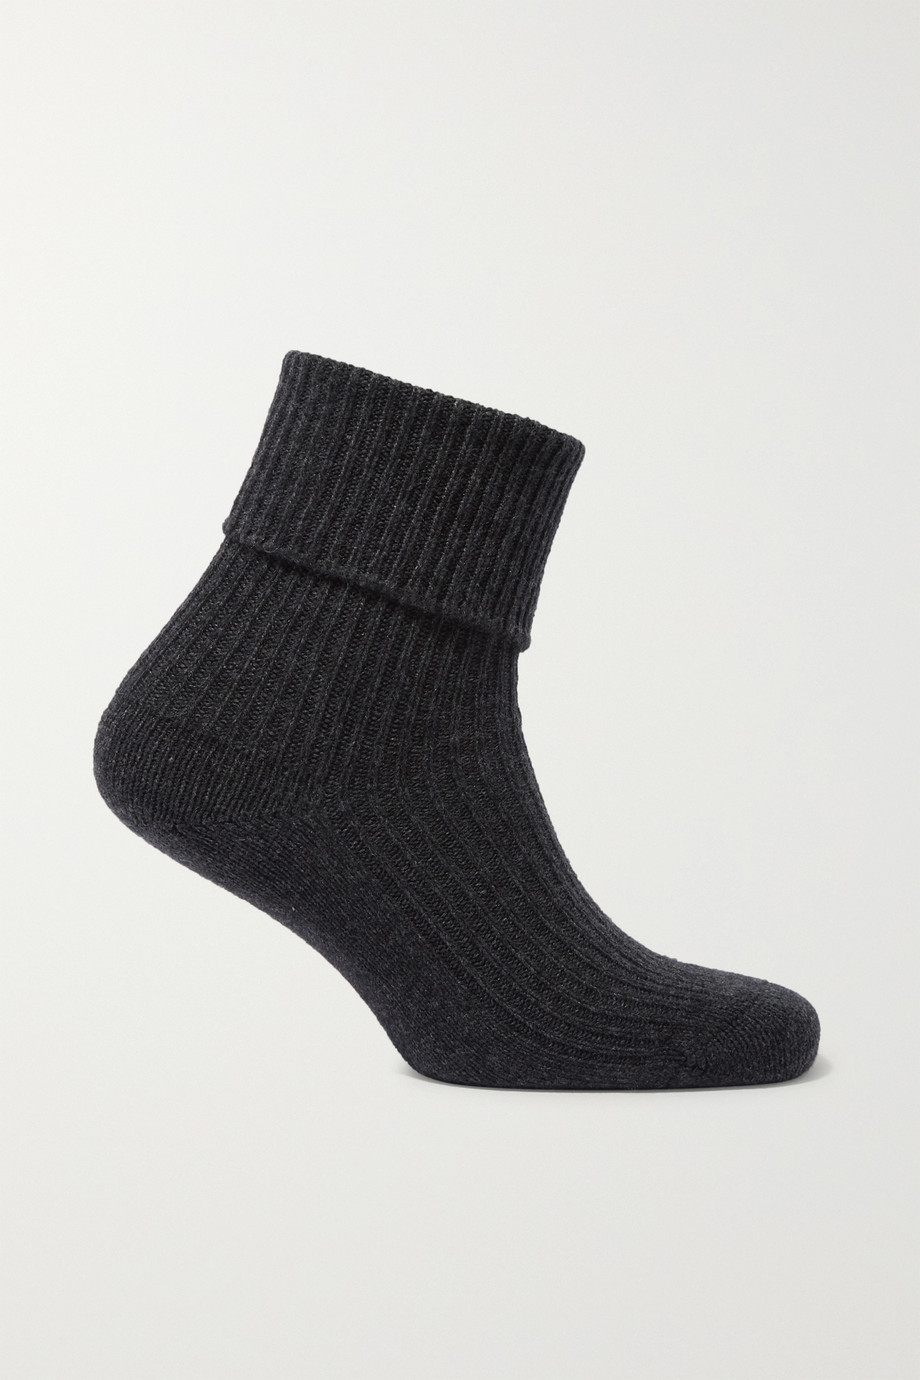 Johnstons of Elgin Cashmere socks